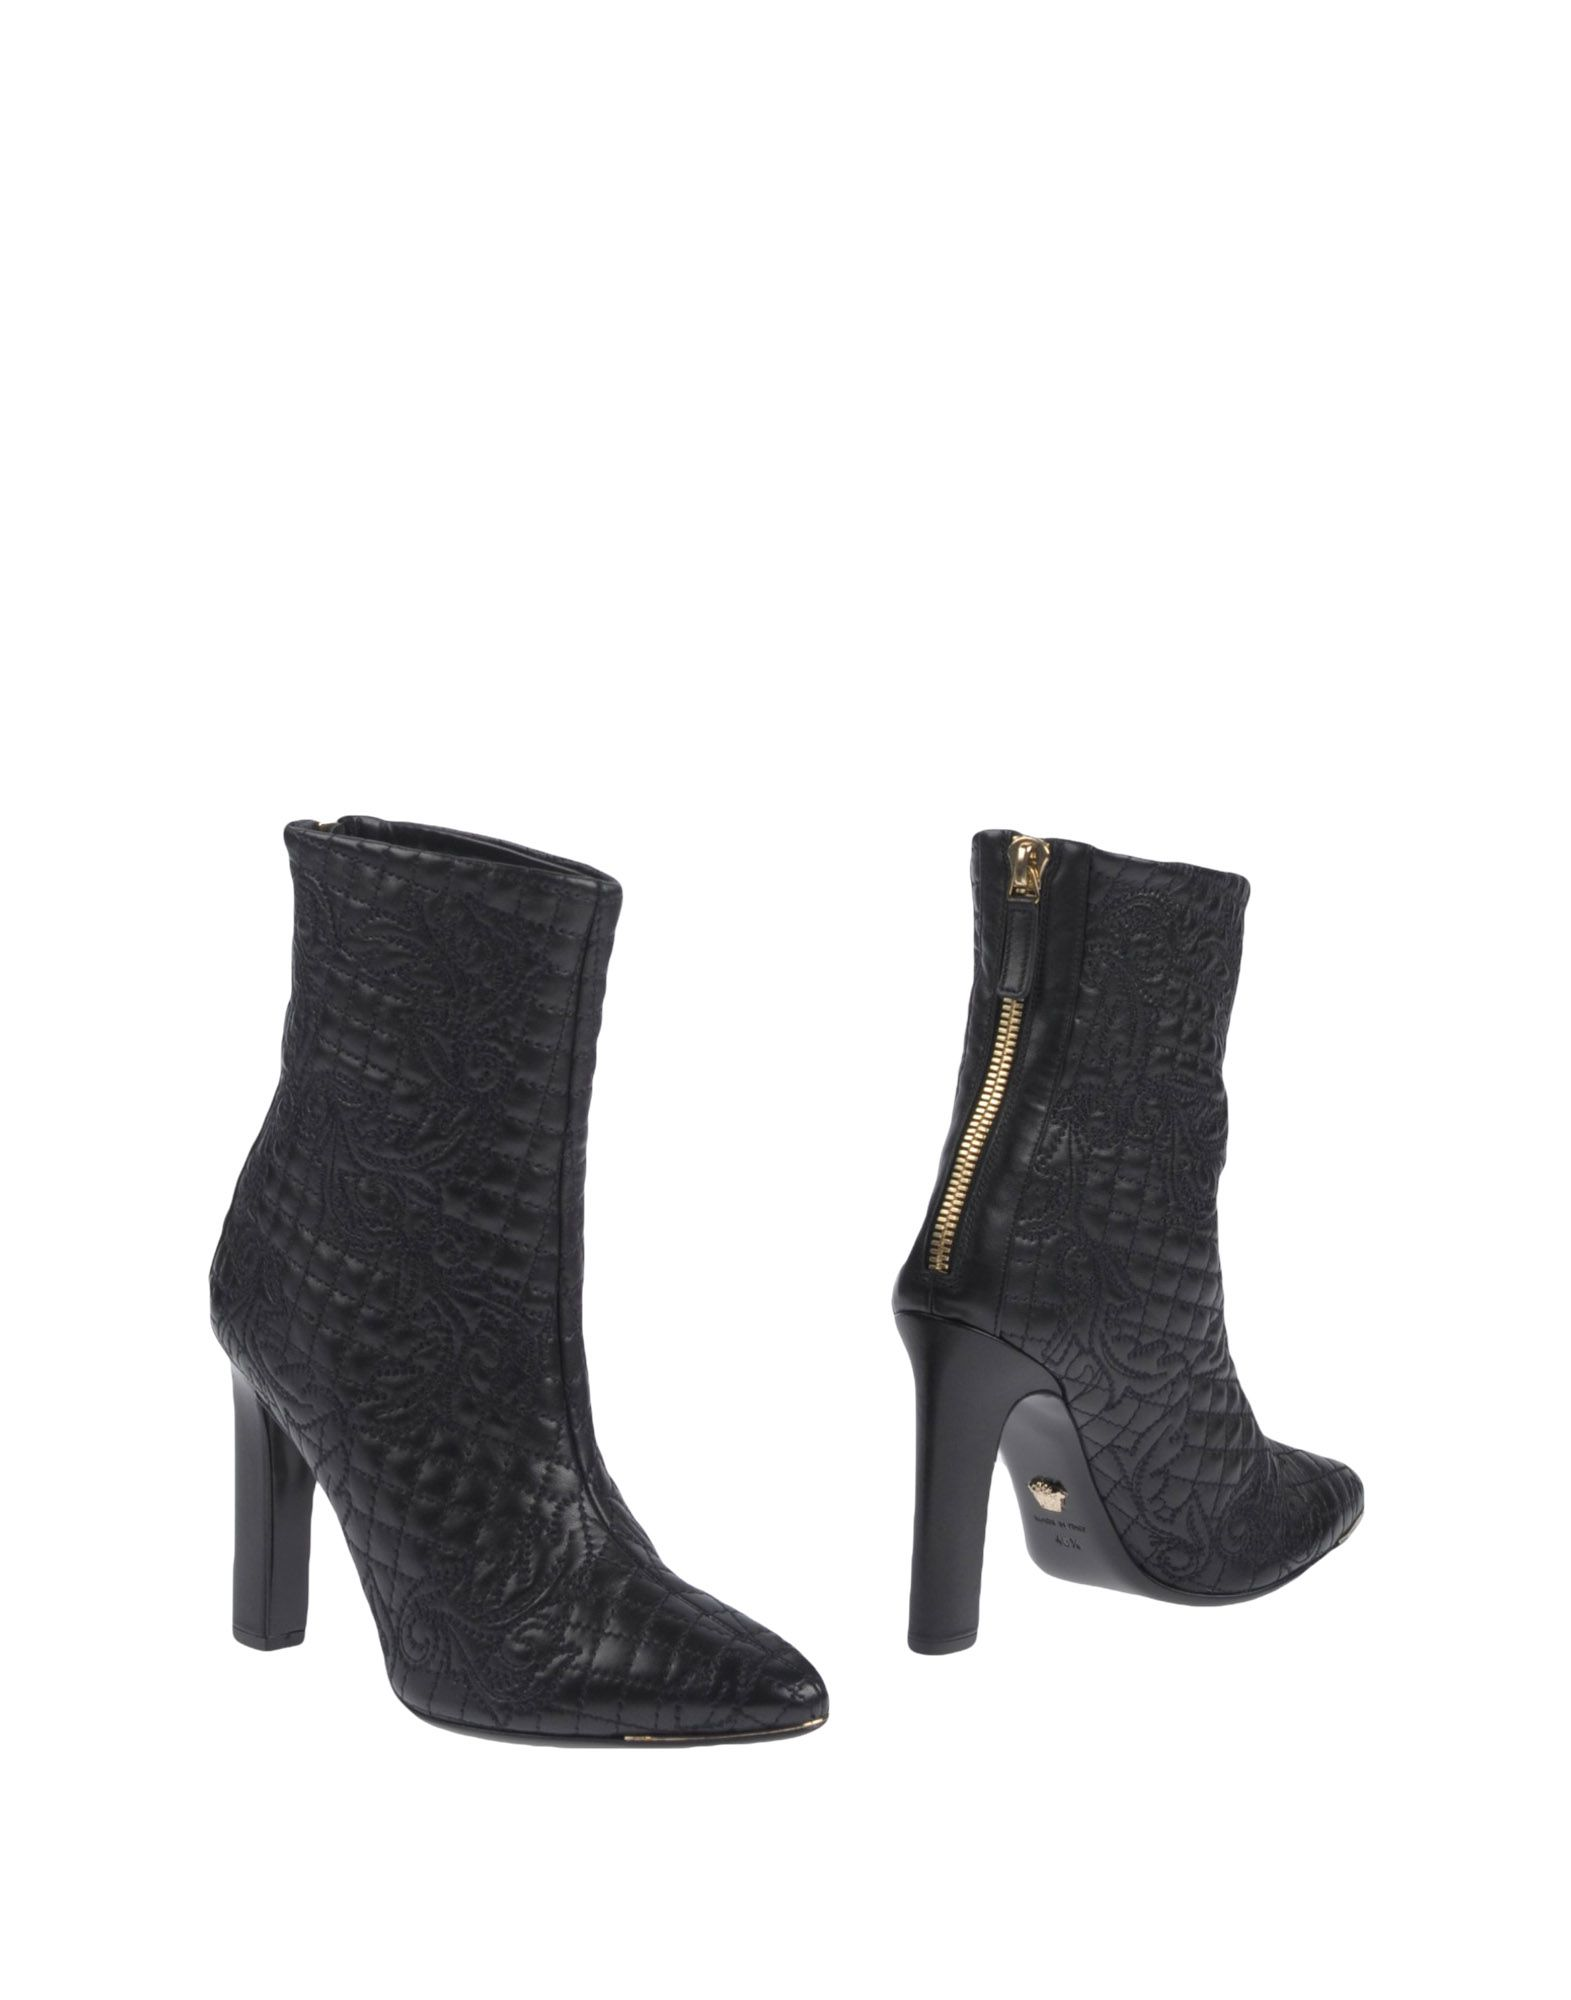 Versace Ankle Boot - Women Versace Ankle Boots online 11451869IW on  Australia - 11451869IW online c32dd9